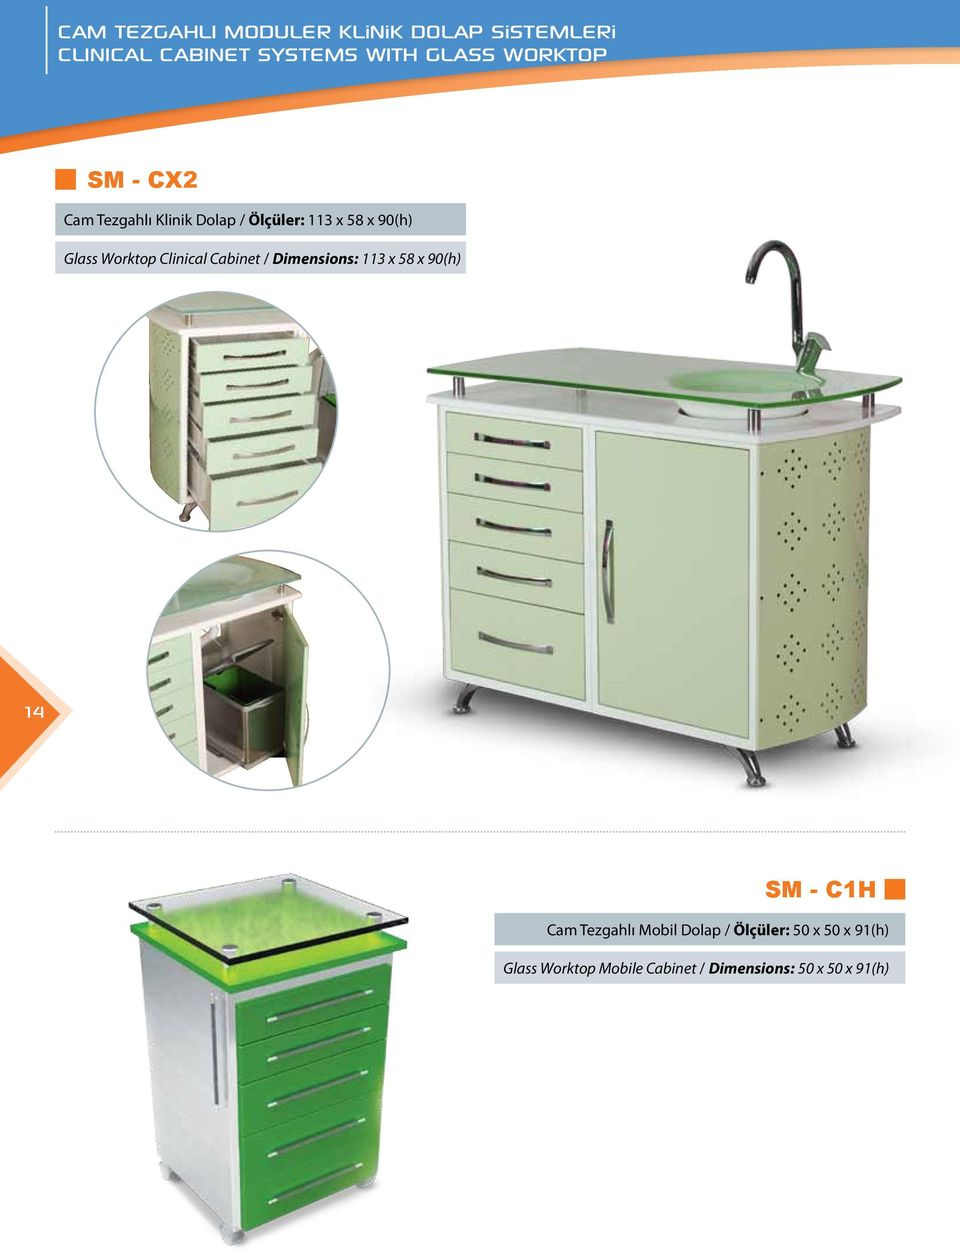 Worktop Clinical Cabinet / Dimensions: 113 x 58 x 90(h) 14 SM - C1H Cam Tezgahlı